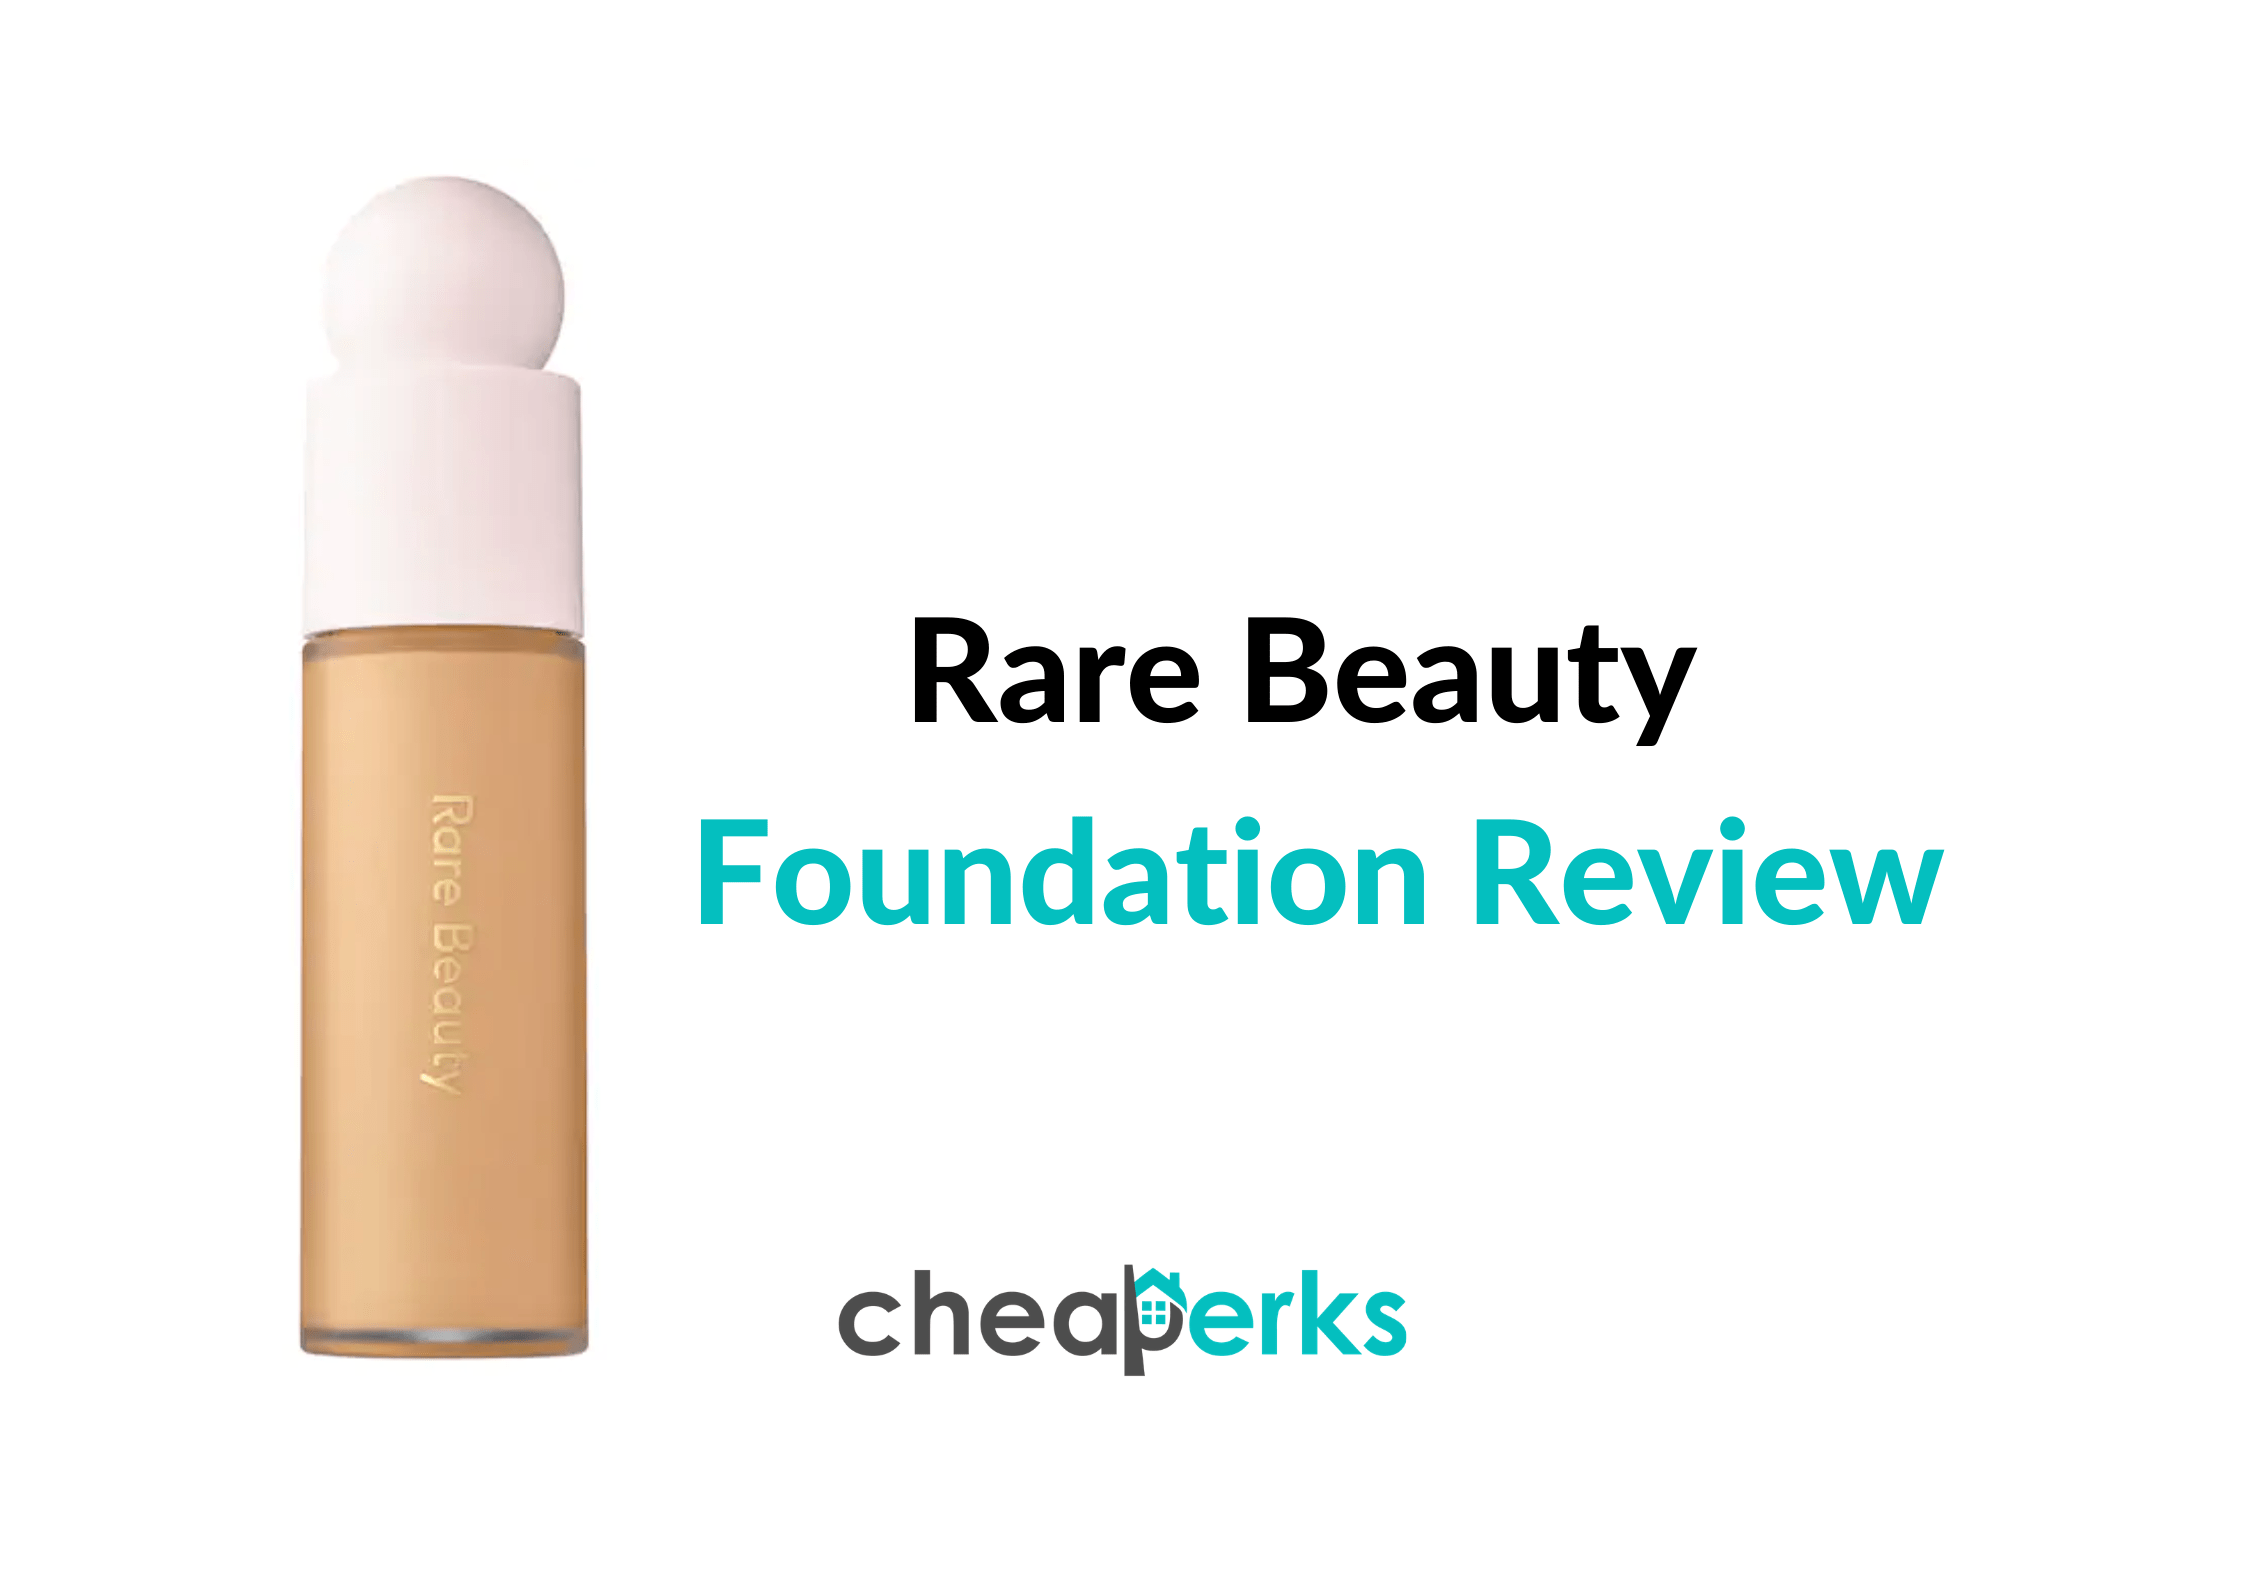 Rare Beauty Foundation Review